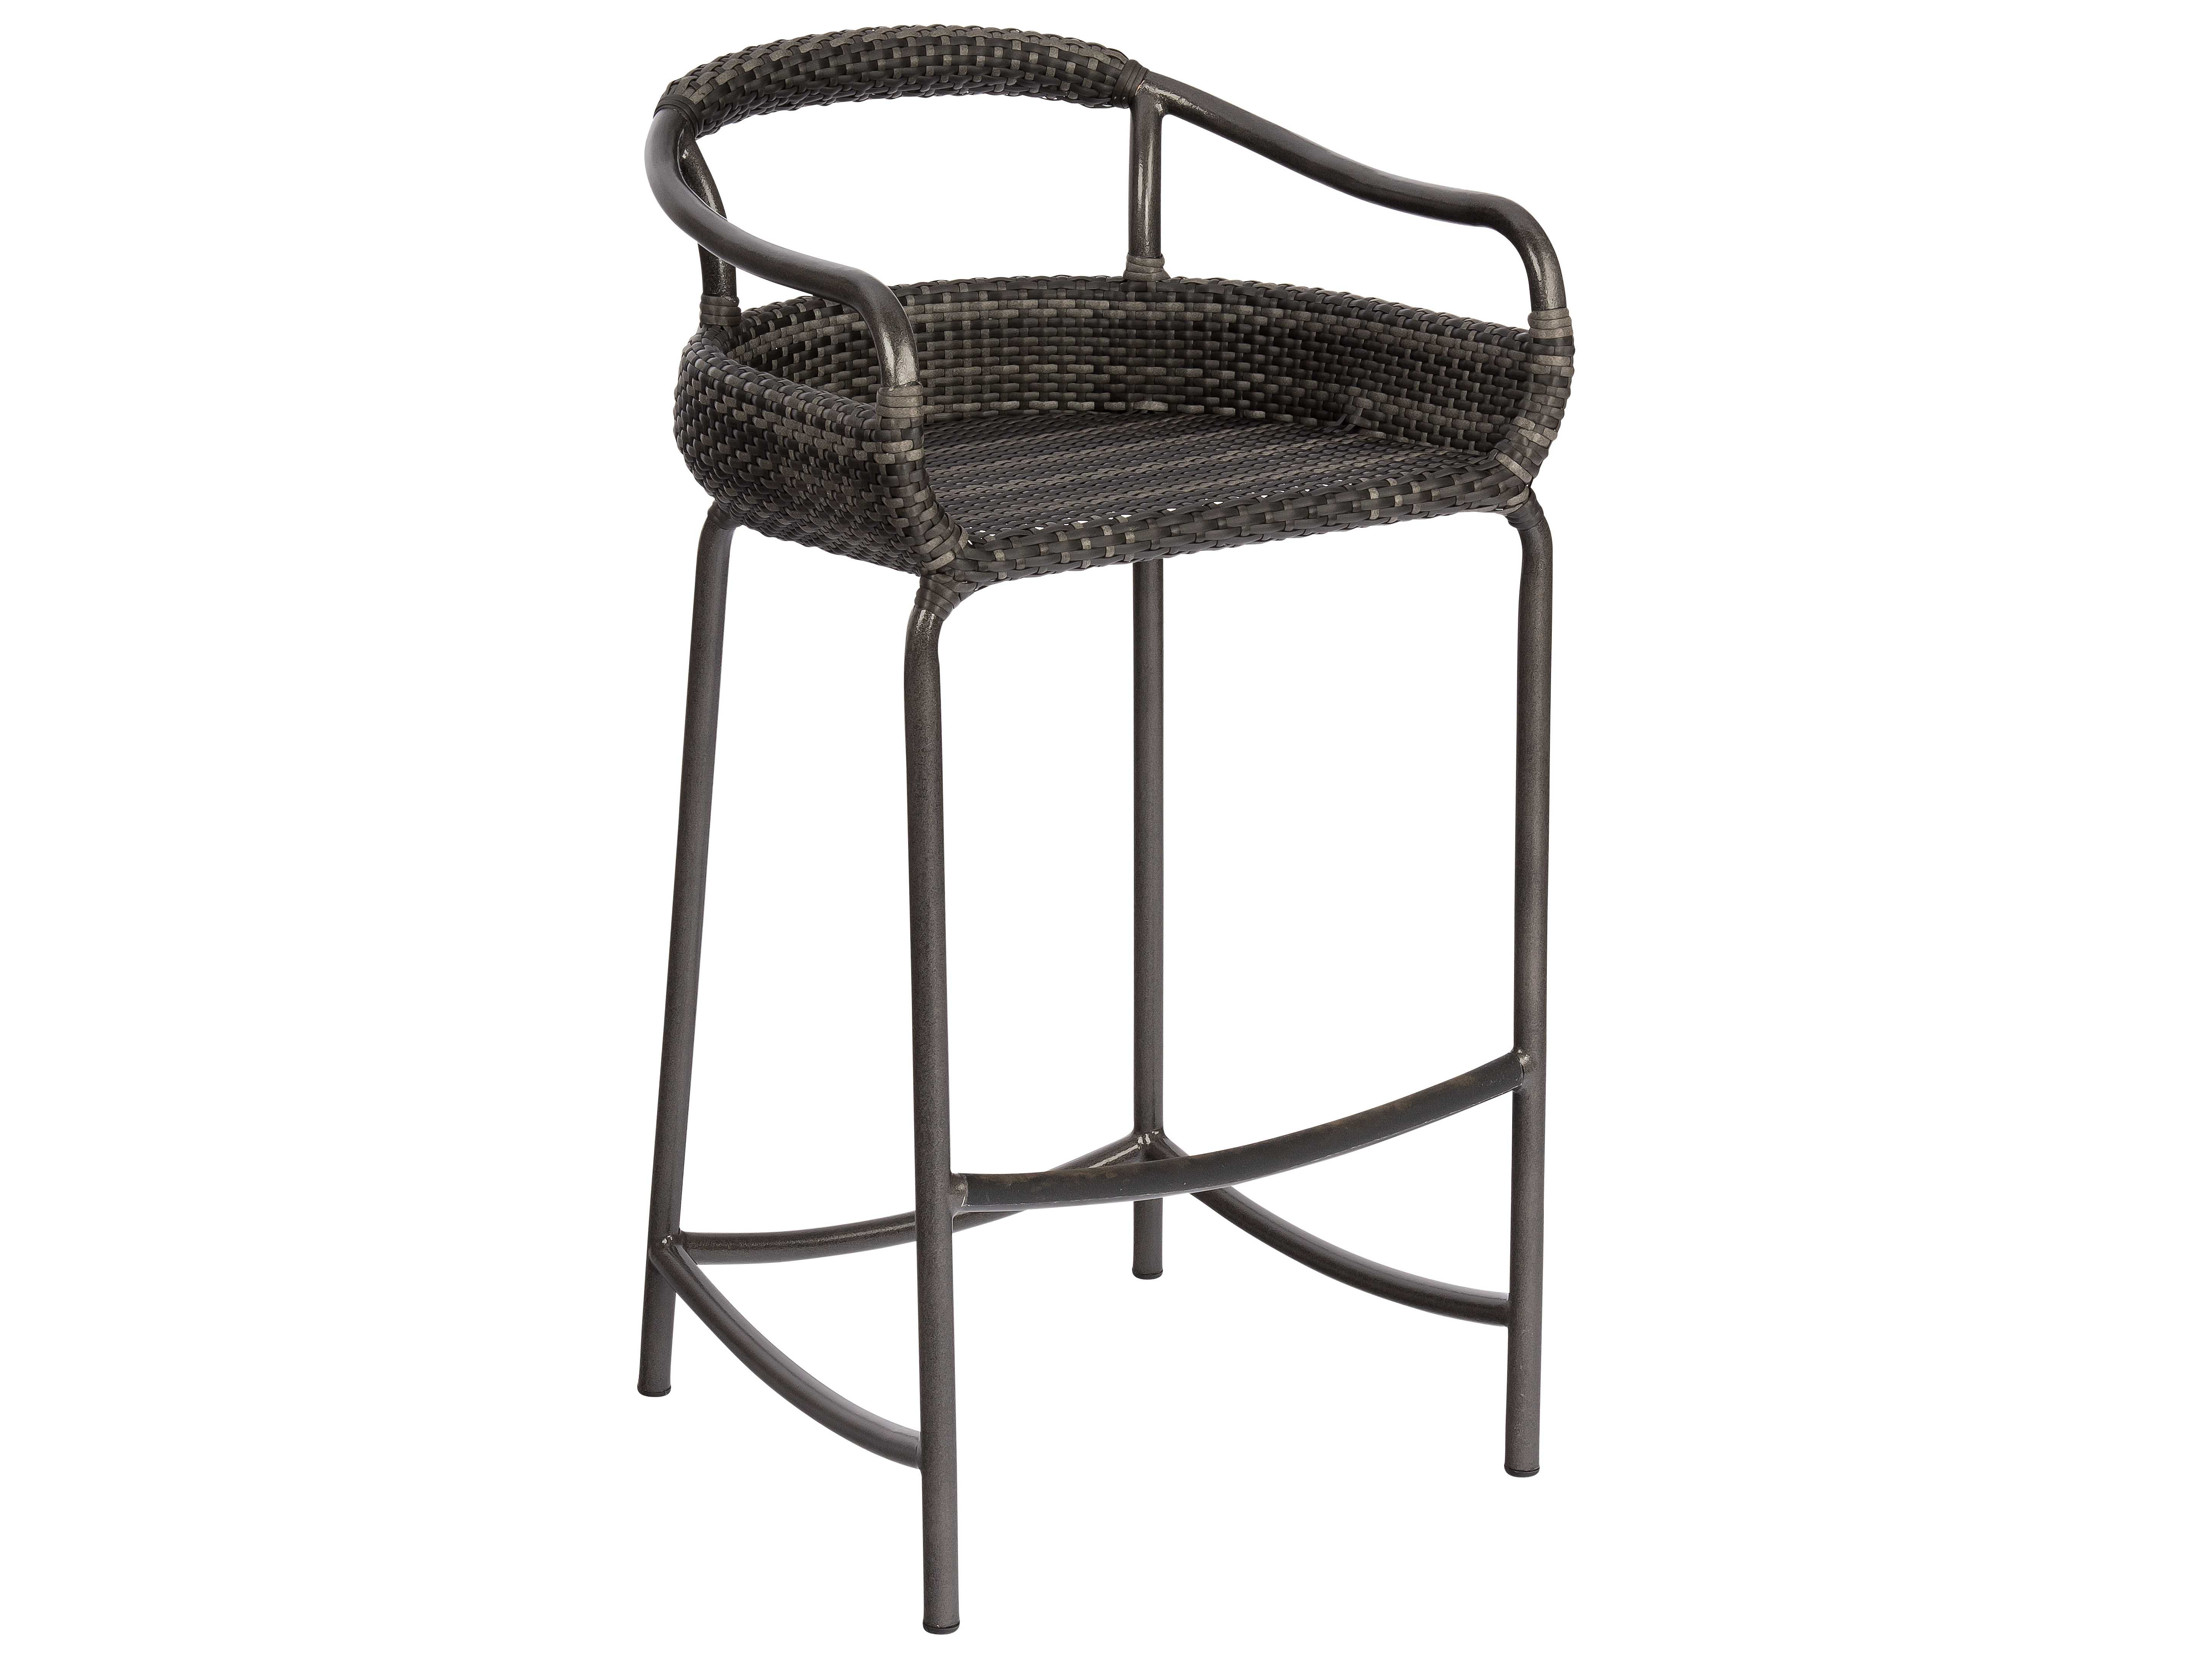 Woodard Canaveral Nelson Wicker Bar Stool S600089